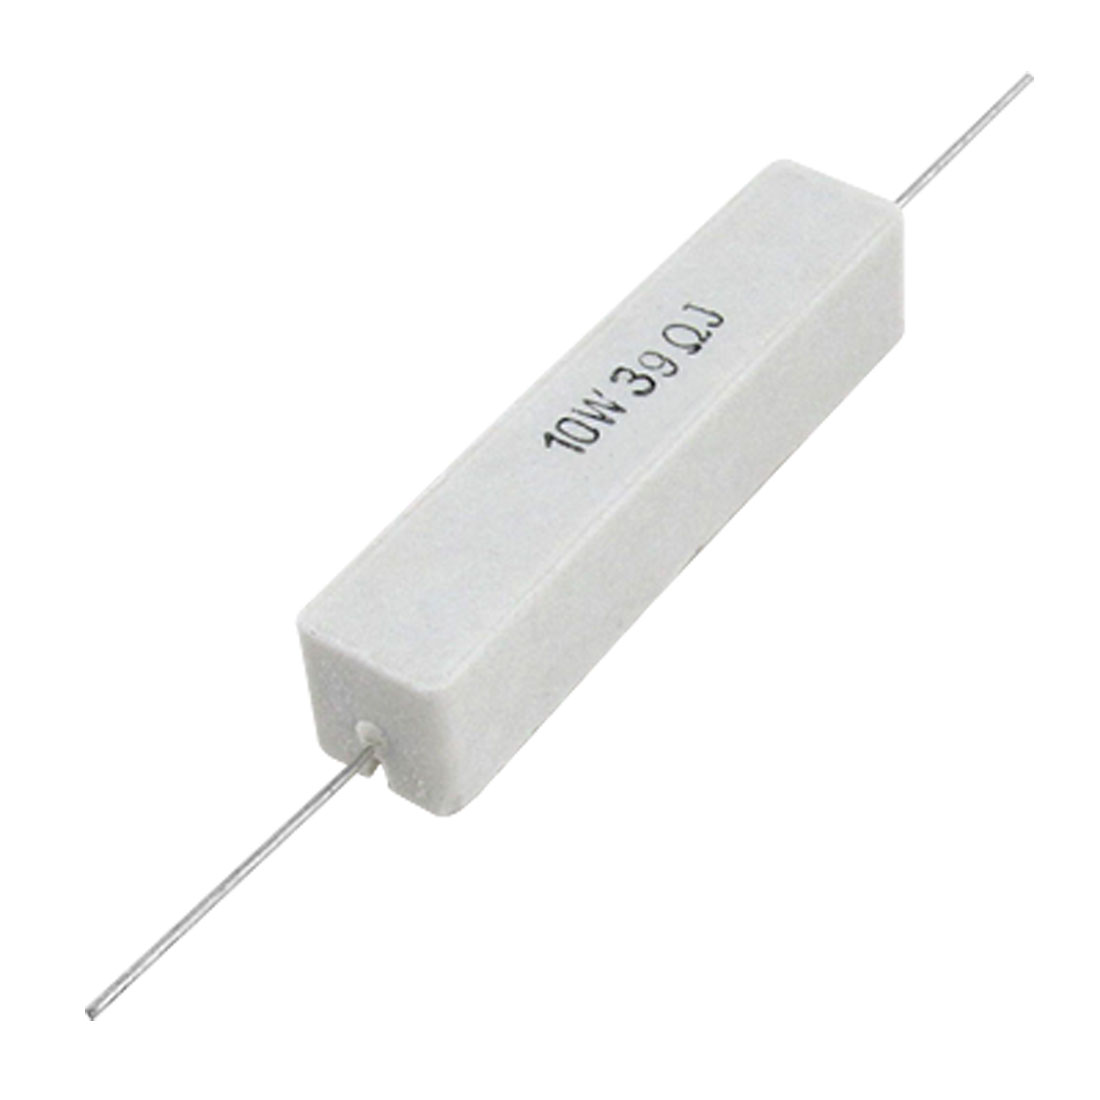 10 Pcs 10W Watt 39 Ohm 5% Fixed Ceramic Cement Resistors